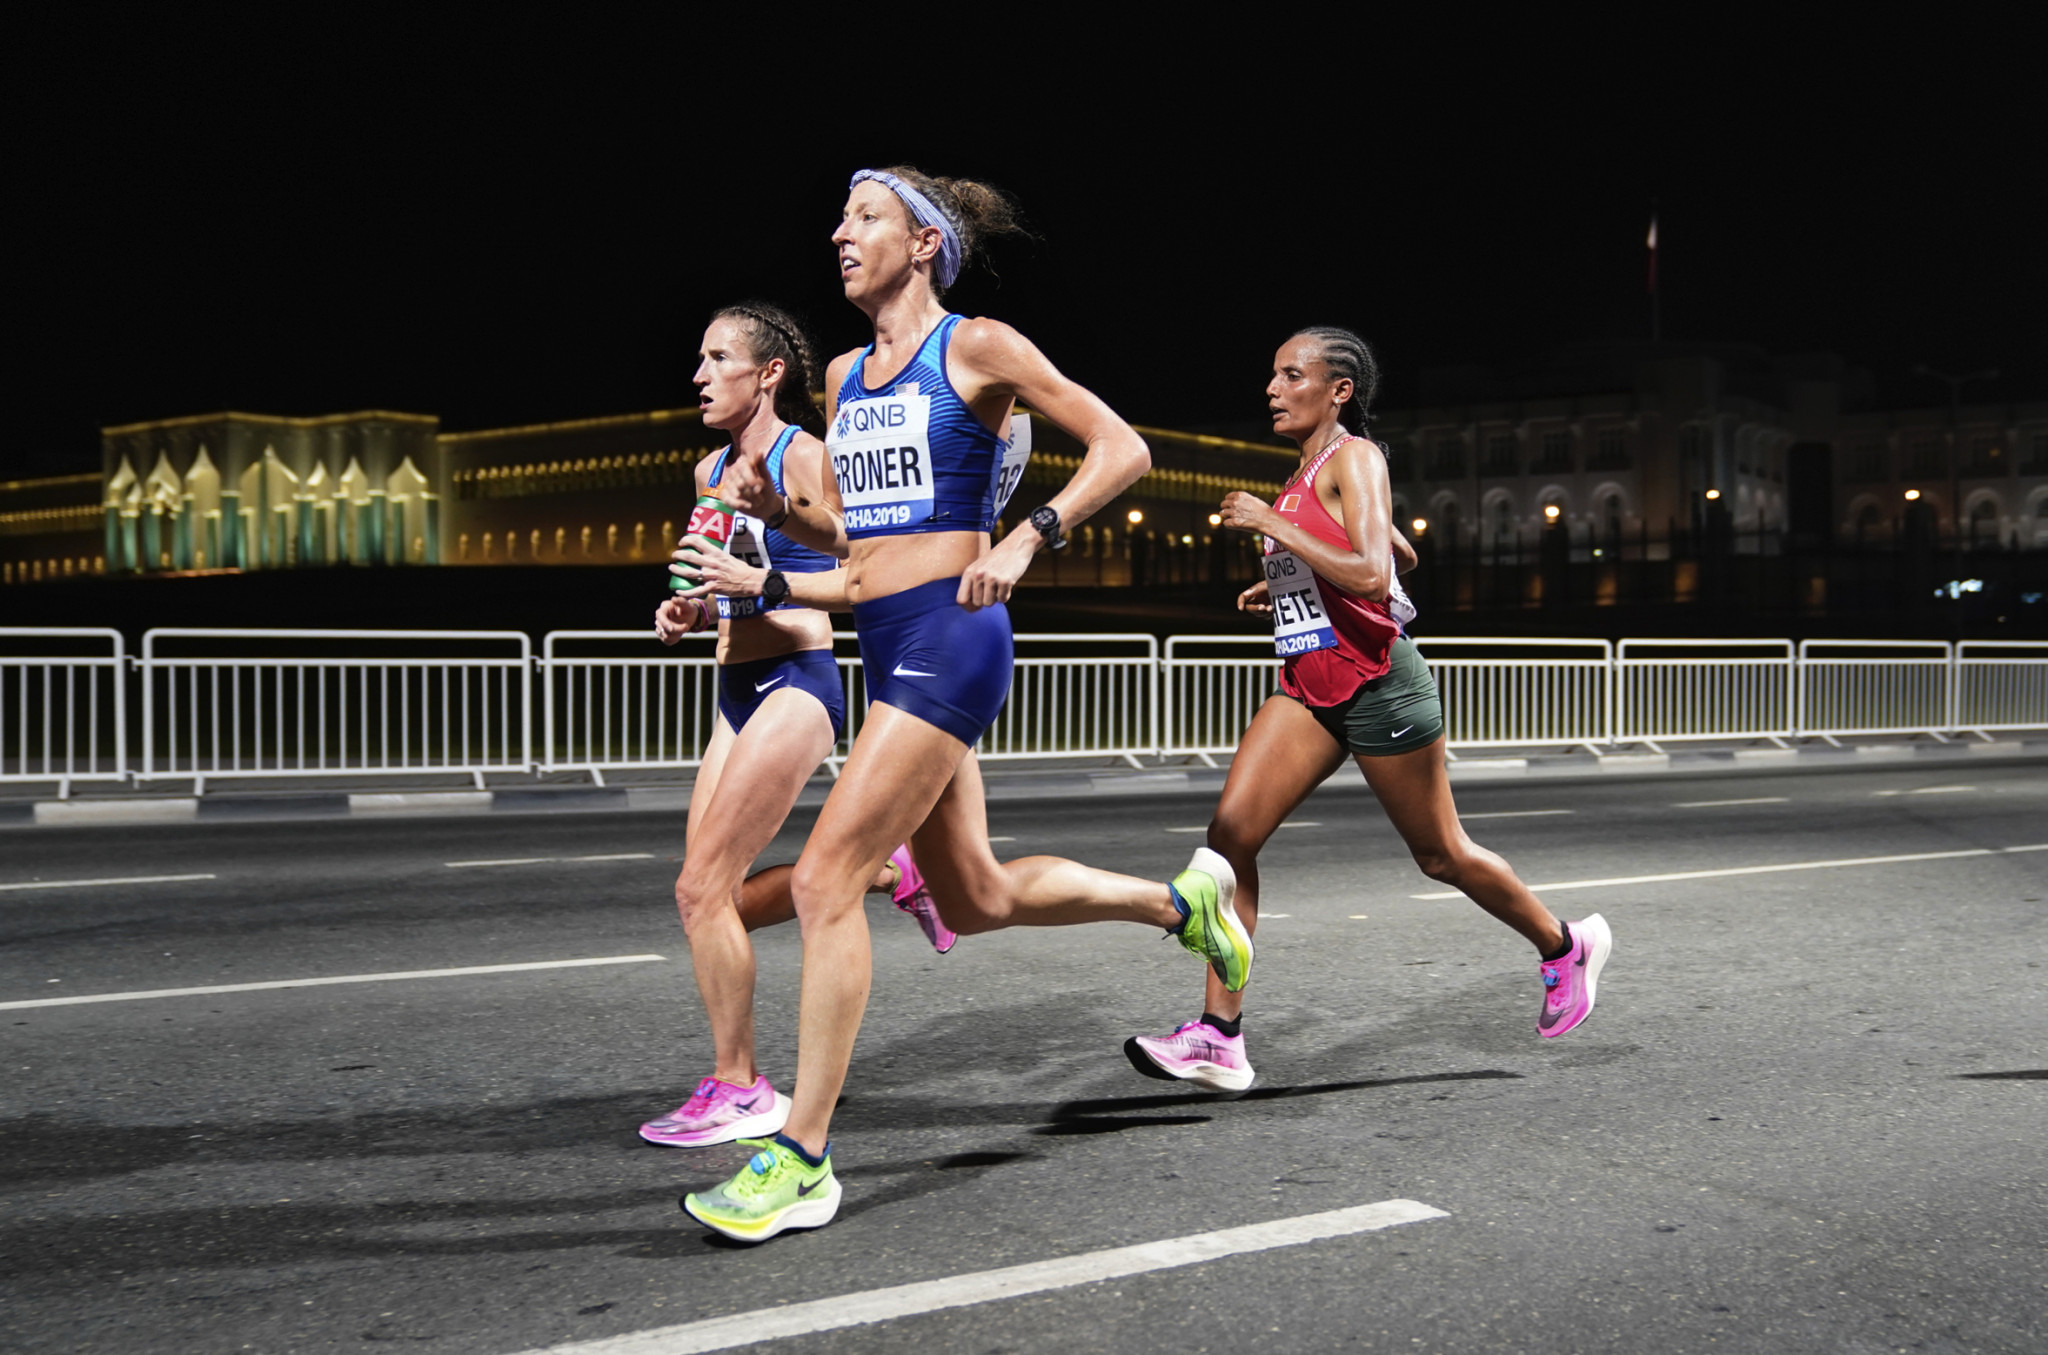 Of the 68 starters in the women's marathon run at midnight at last year's Doha World Championships, 28 failed to finish - but that may not have been solely down to conditions ©Getty Images